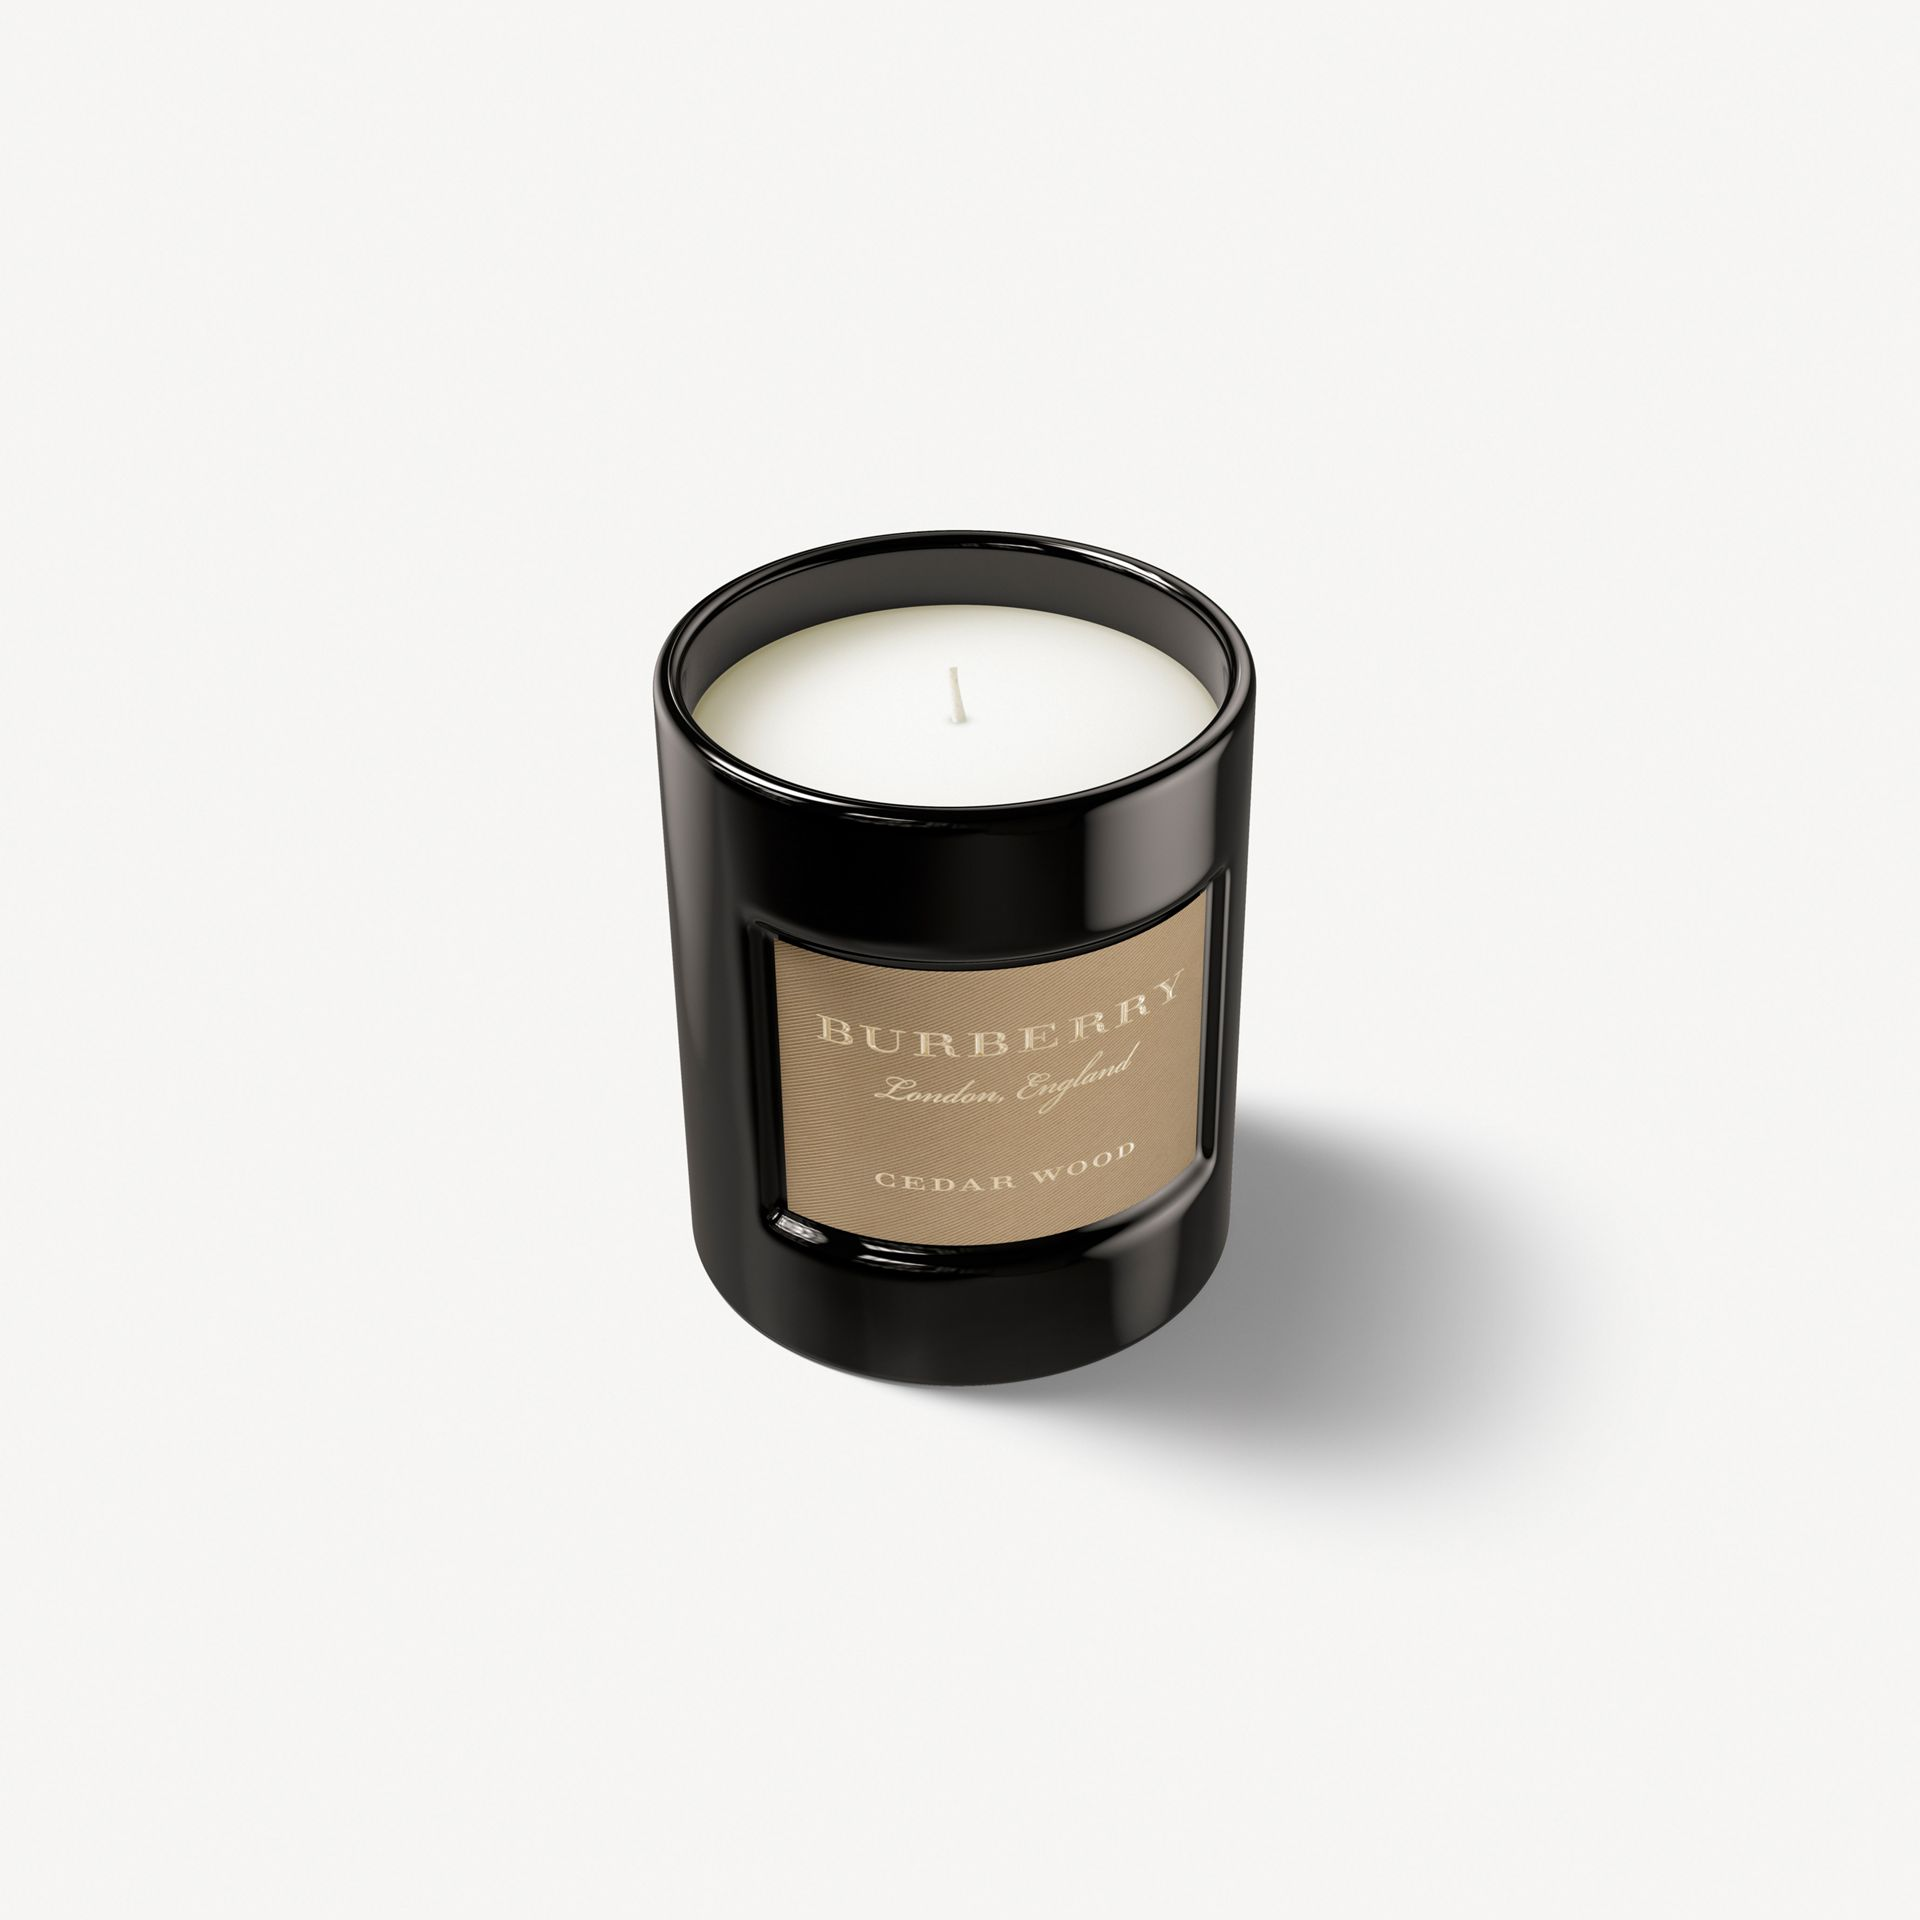 Cedar Wood Scented Candle – 240g - gallery image 1